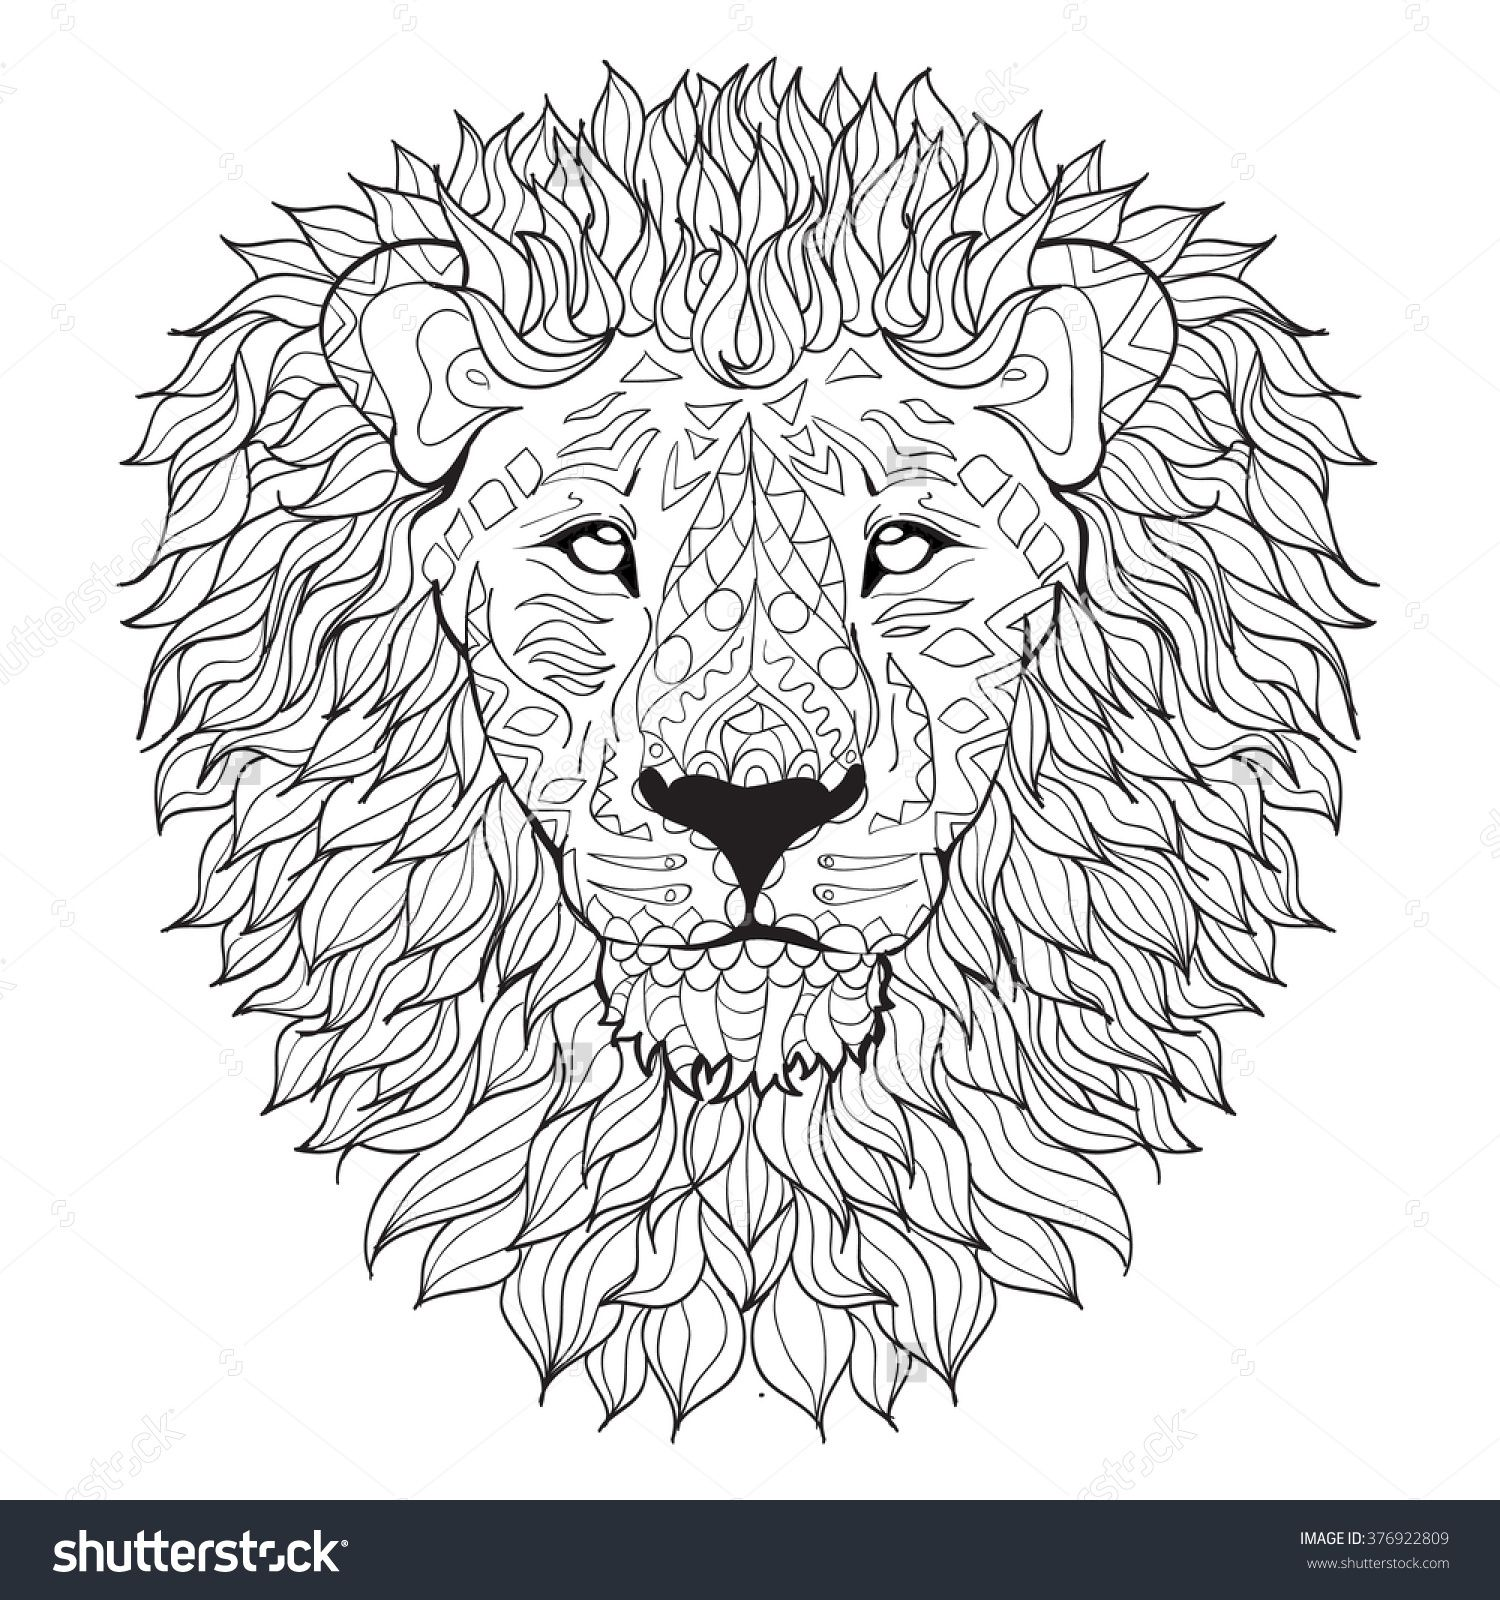 Hand Drawn Lion Head Isolated On Transparent Background Anti Stress Coloring Page Vector Monoc Lion Coloring Pages Animal Totem Spirit Guides Coloring Pages